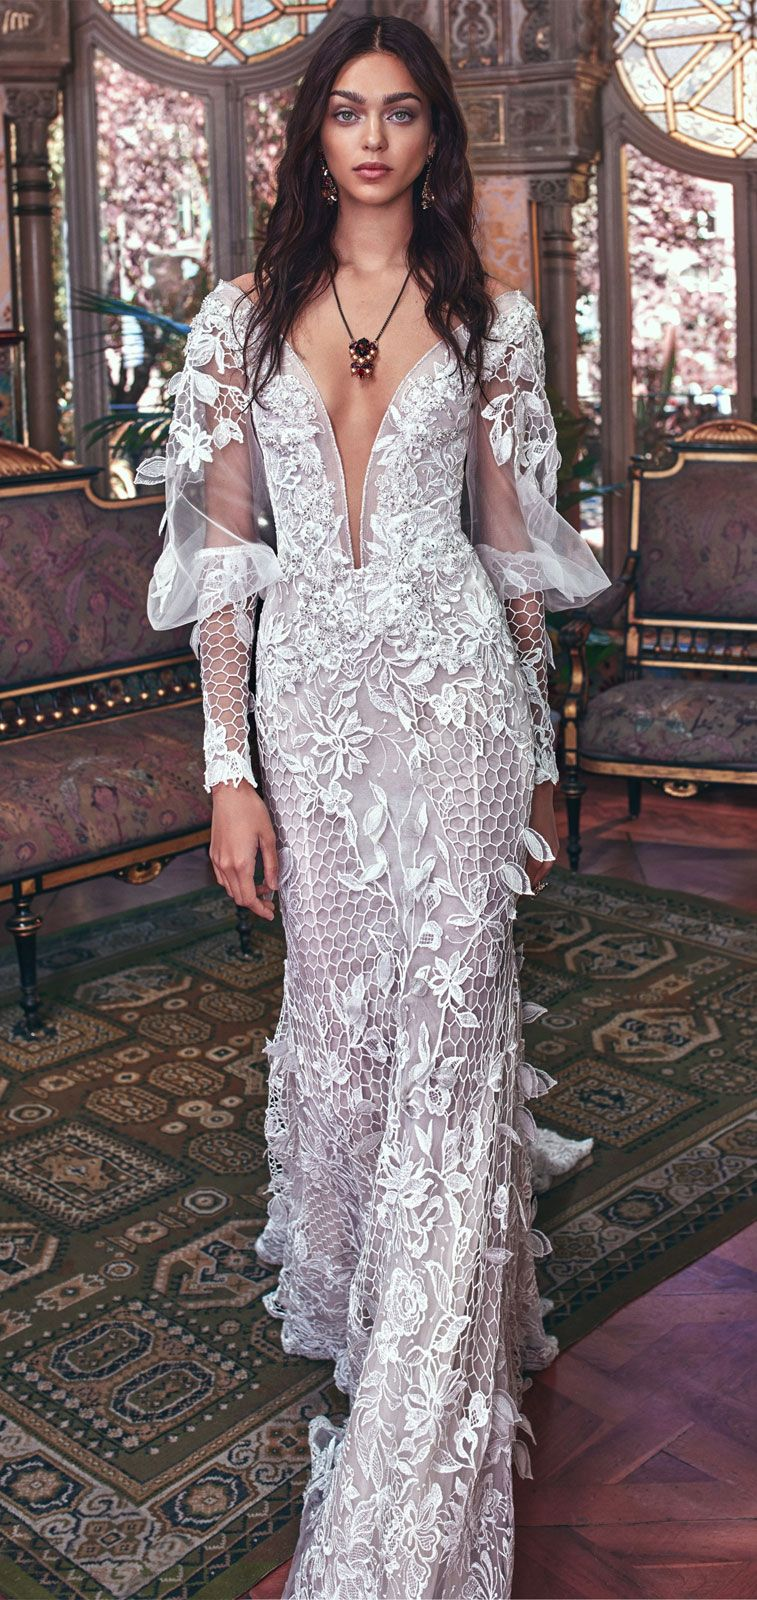 3D lace gown with open work fish net elements, a low plunging V neckline, and sheer Victorian sleeves with lace cuffs #wedding #weddingdress #weddinggowns